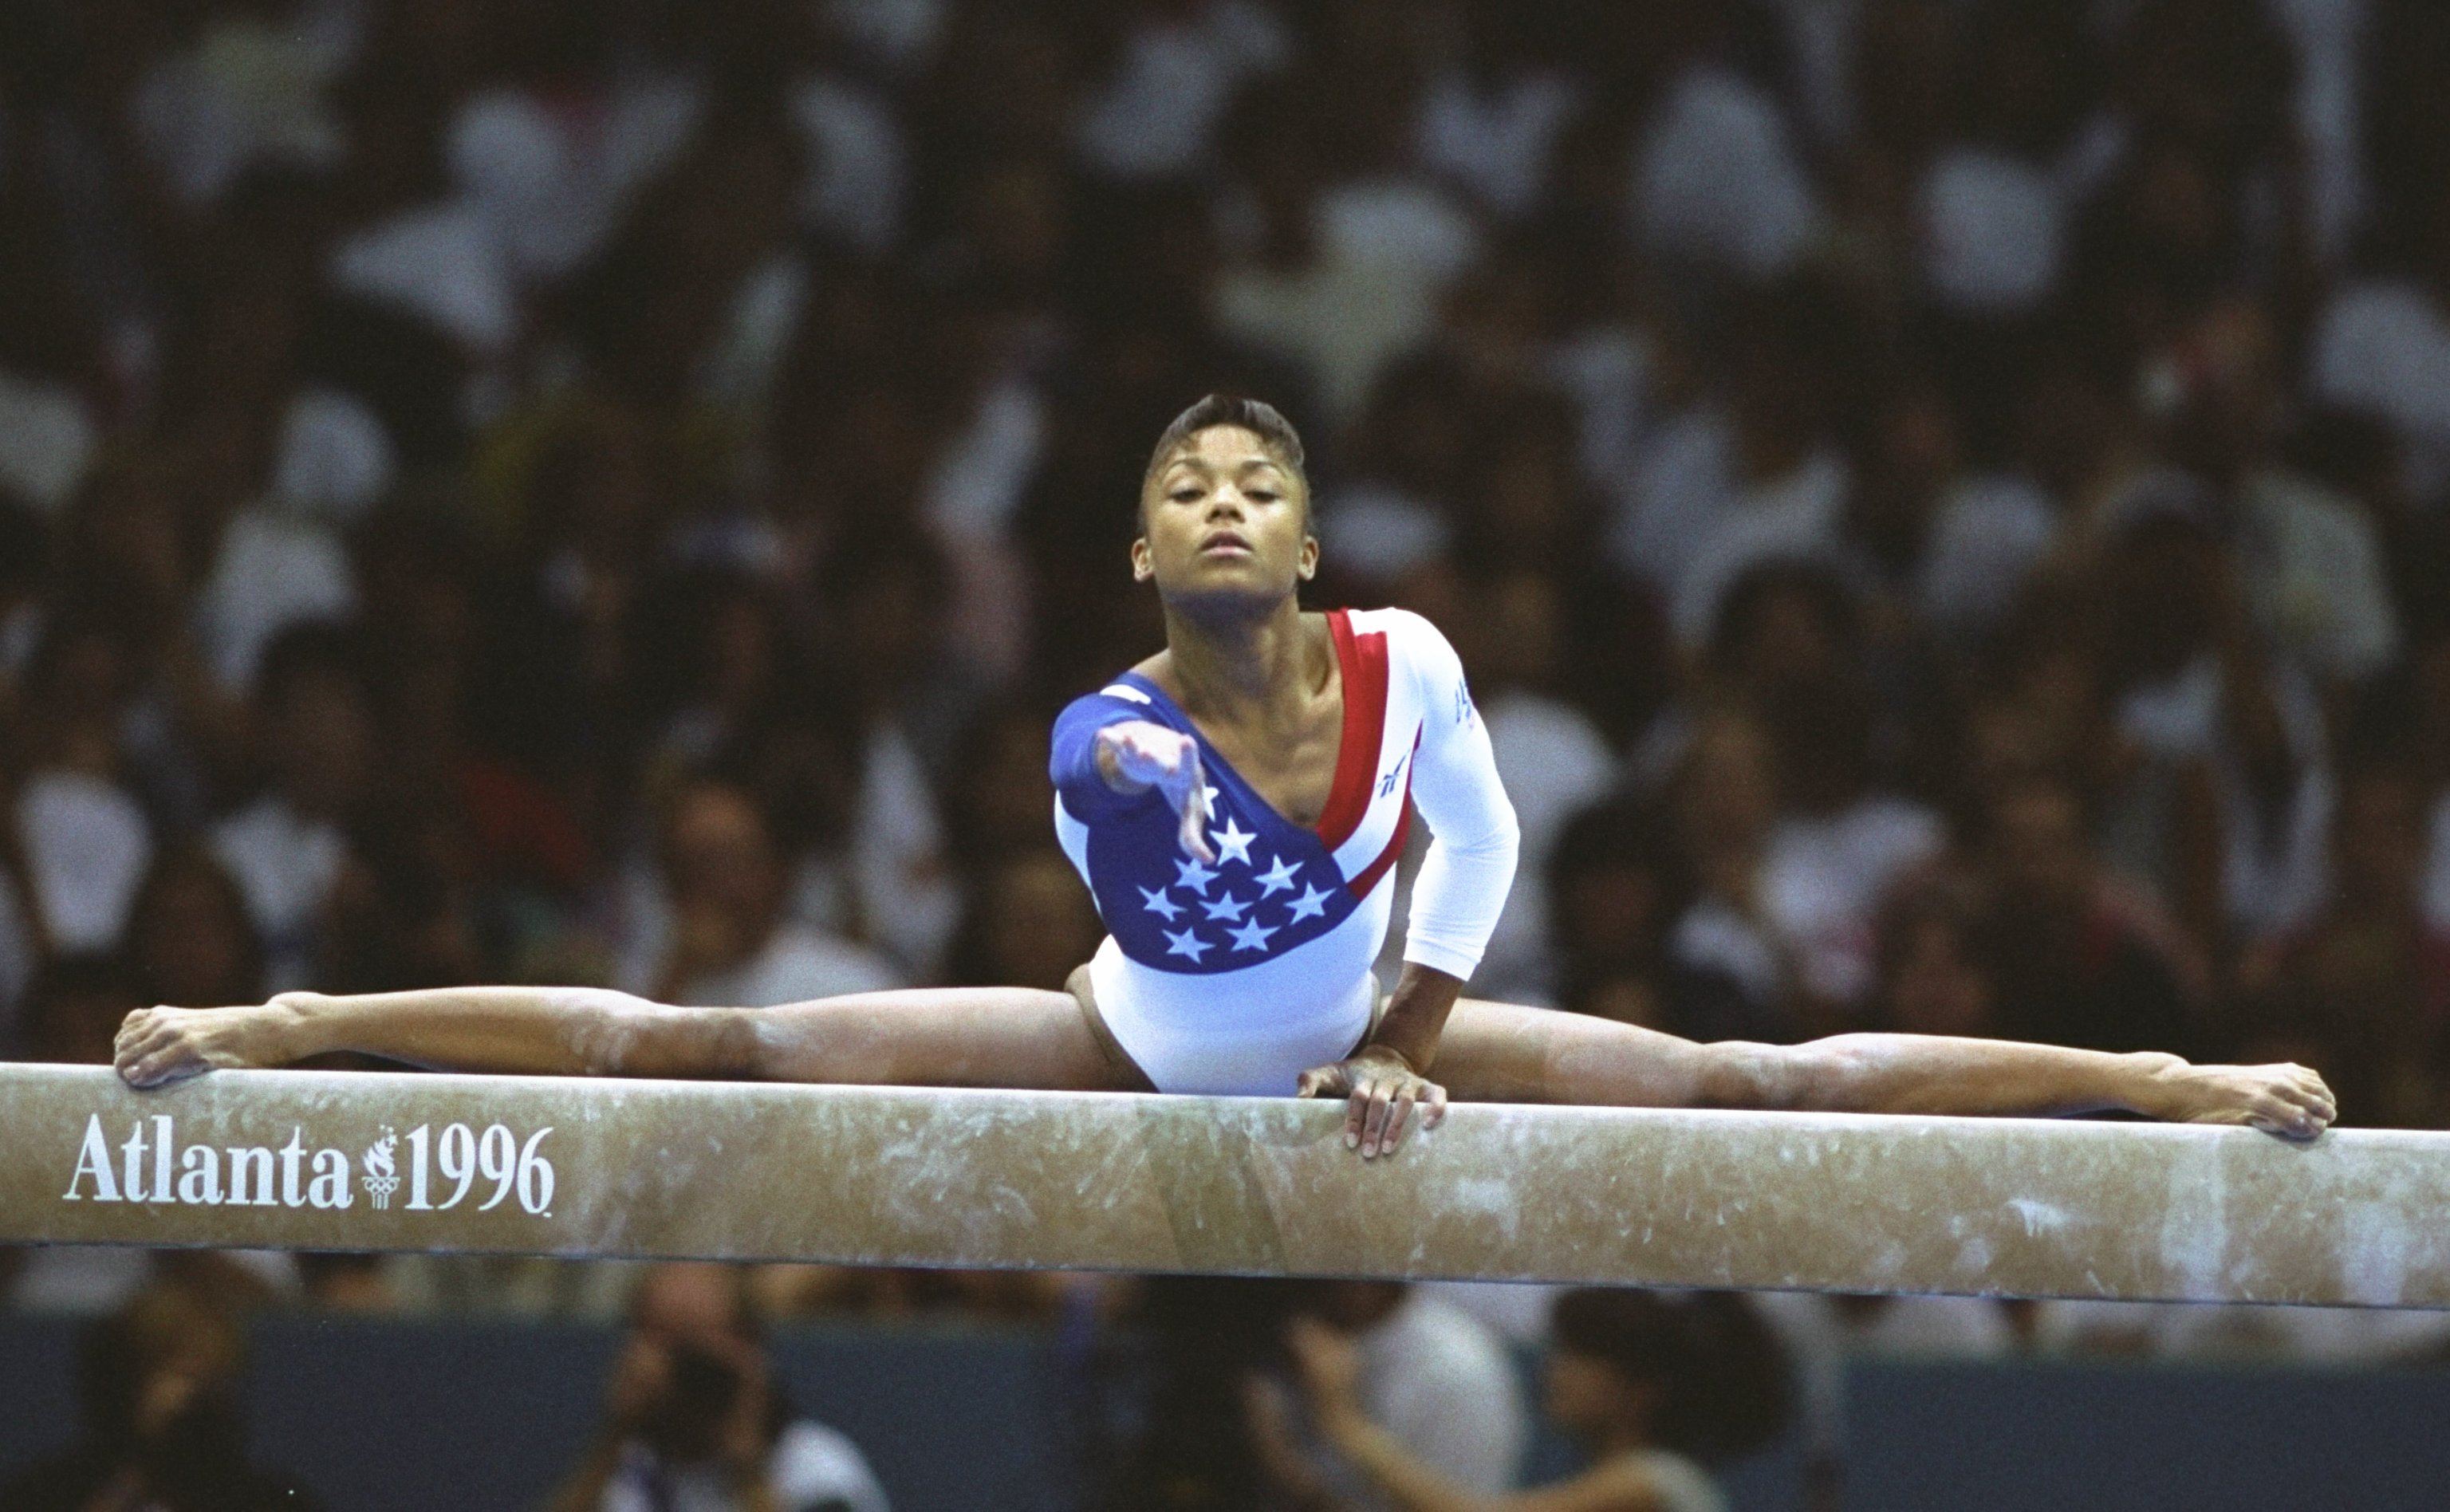 Dominique Dawes of the USA on the beam during the womens team gymnastics event at the Georgia Dome at the 1996 Centennial Olympic Games in Atlanta on July 23, 1996.